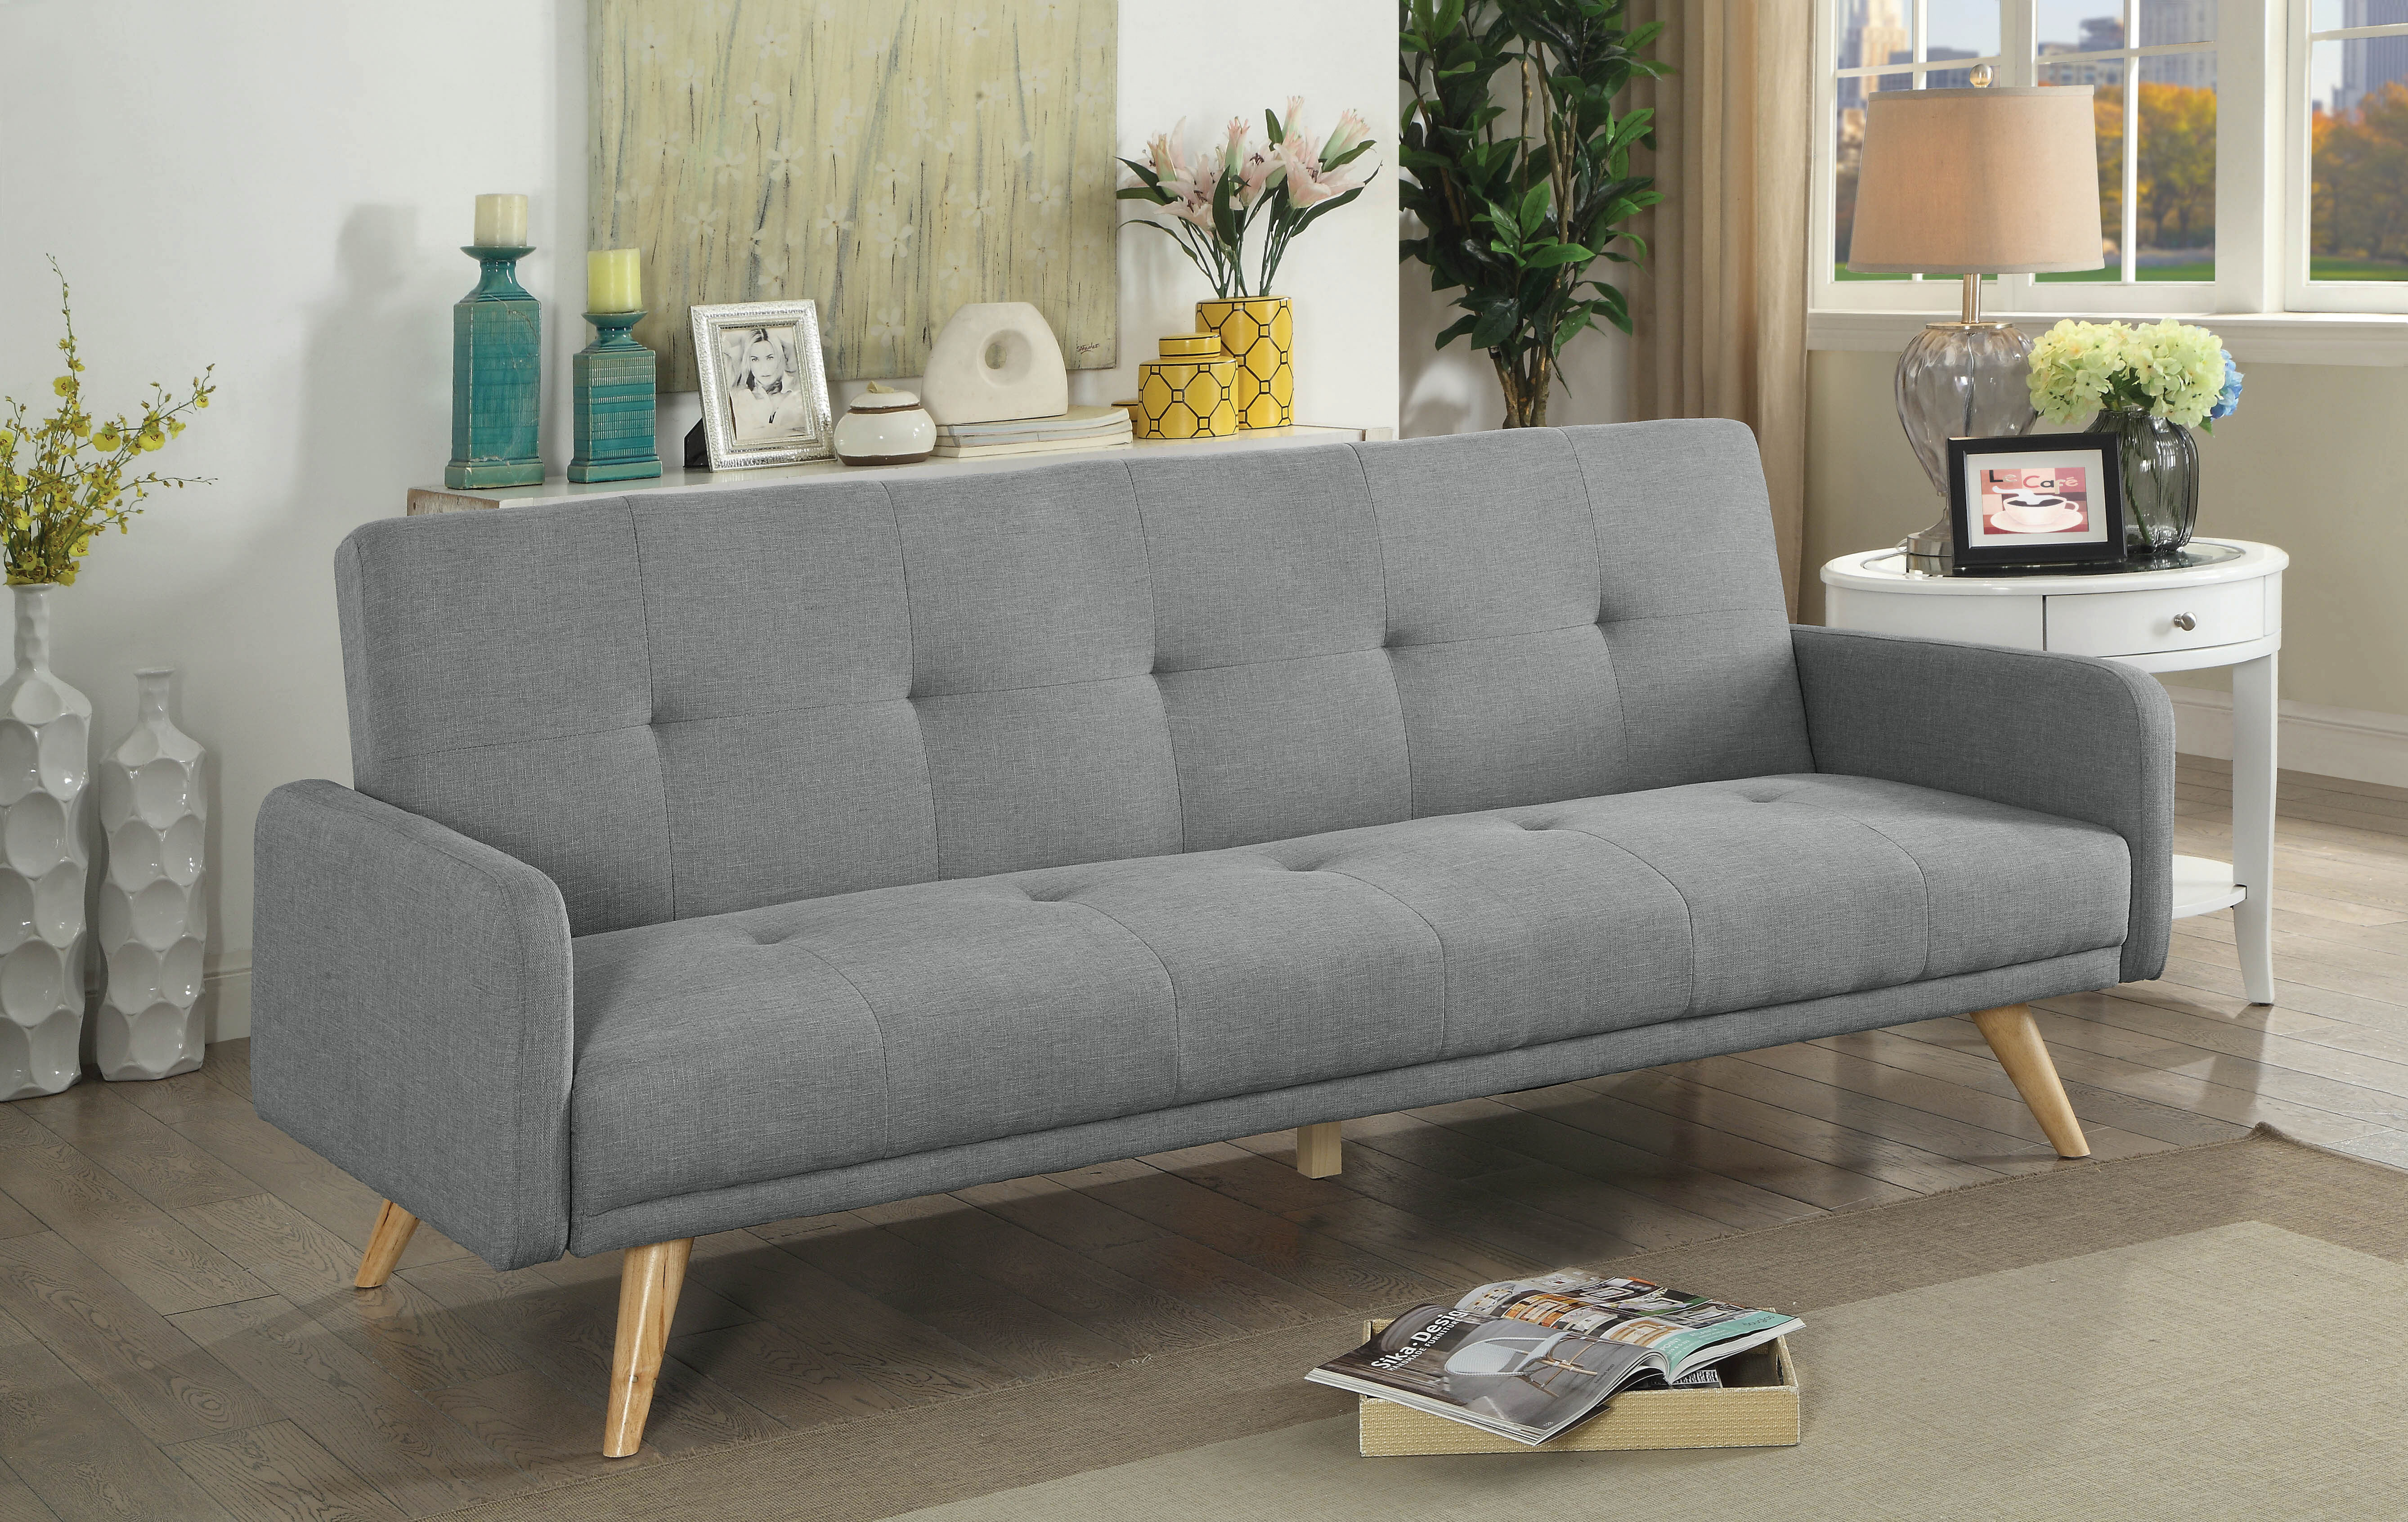 mattress furniture and pdx long reviews pocket coil wayfair extra company gel futons futon mozaic suede